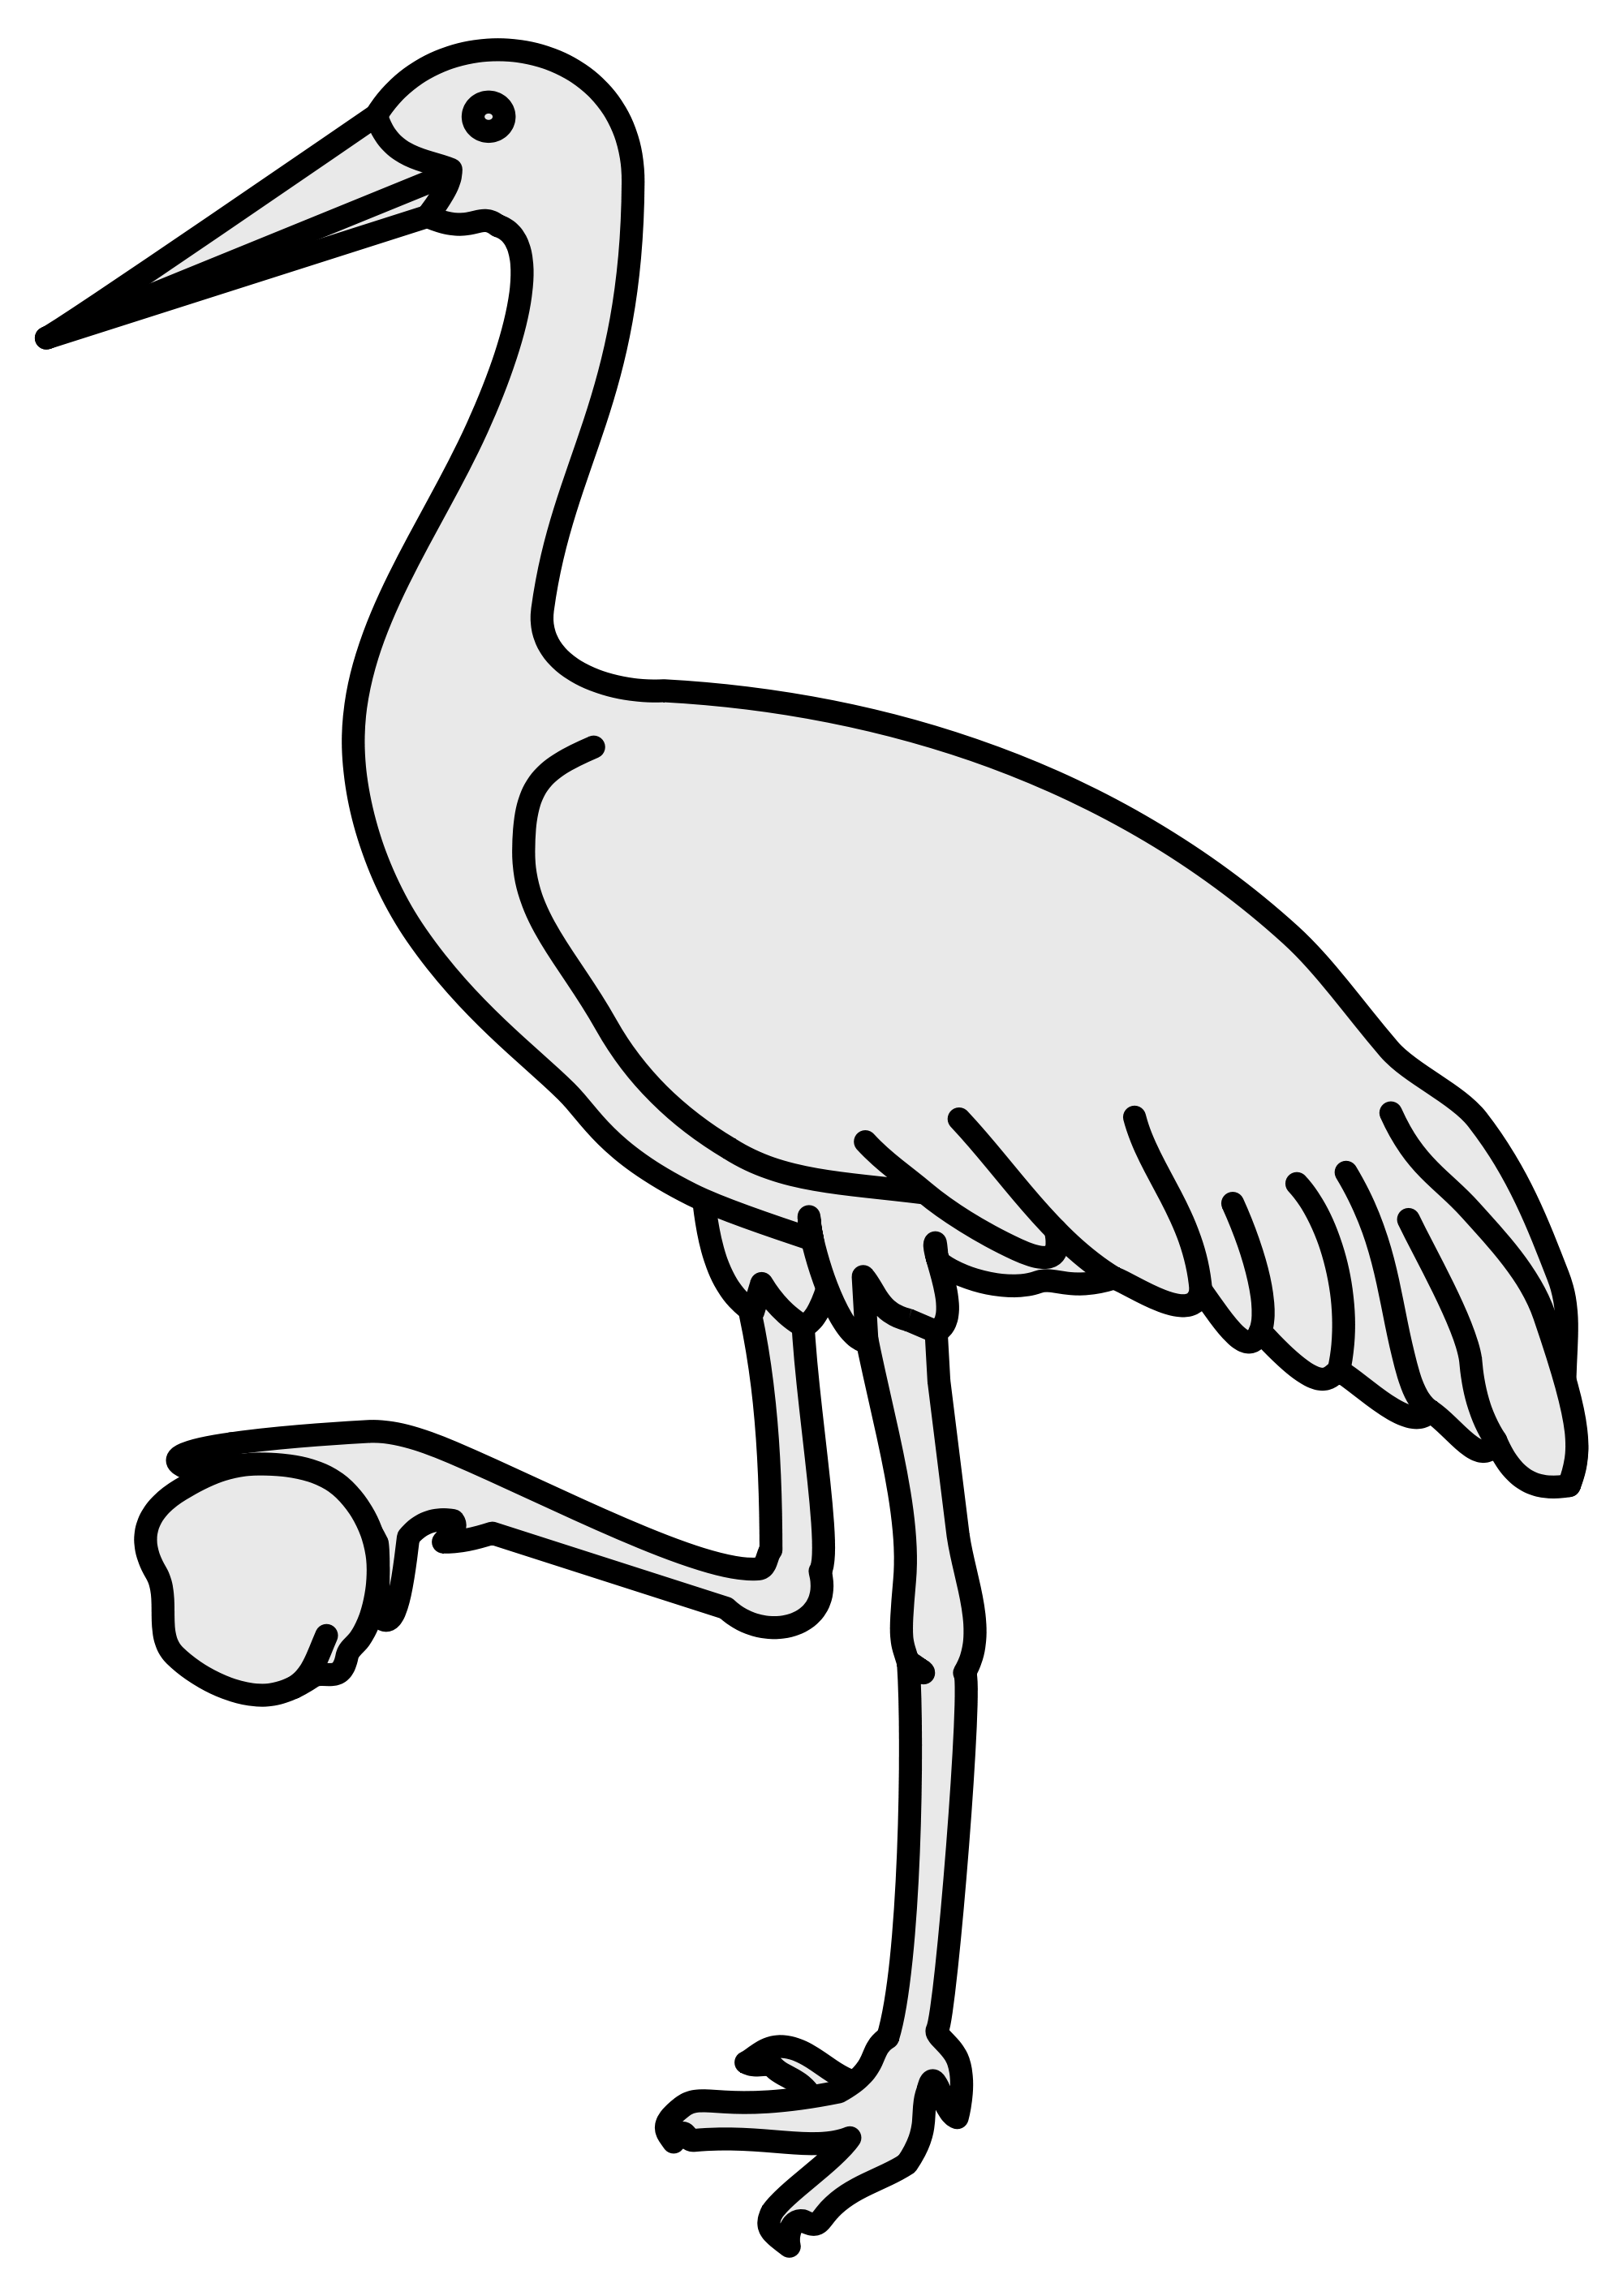 Crane svg #10, Download drawings